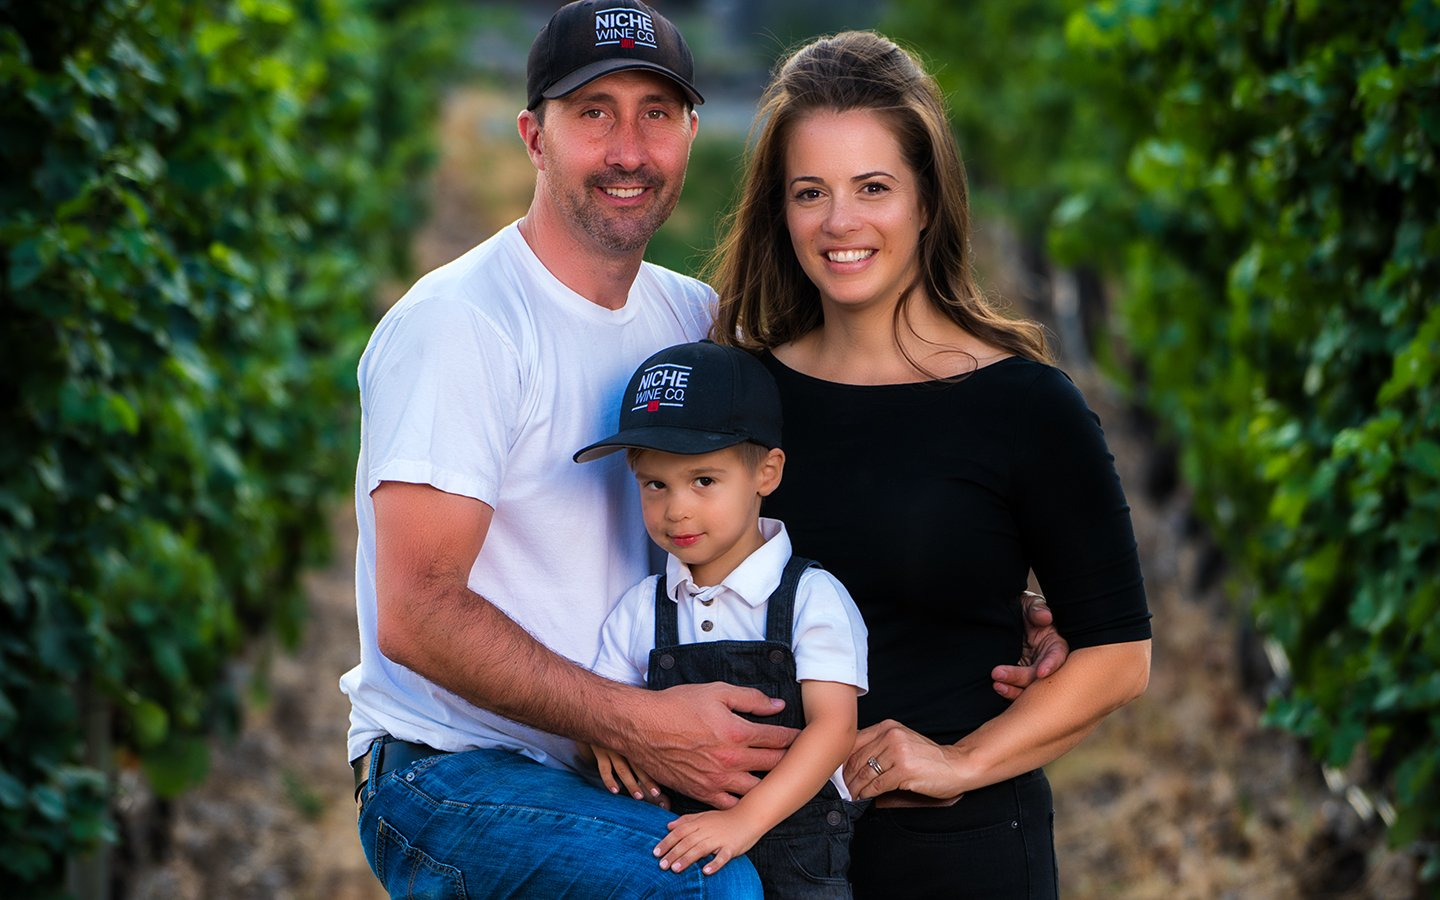 http://spatulamedia.ca/wp-content/uploads/2019/05/niche-winery-james-joanna-hugh.jpg